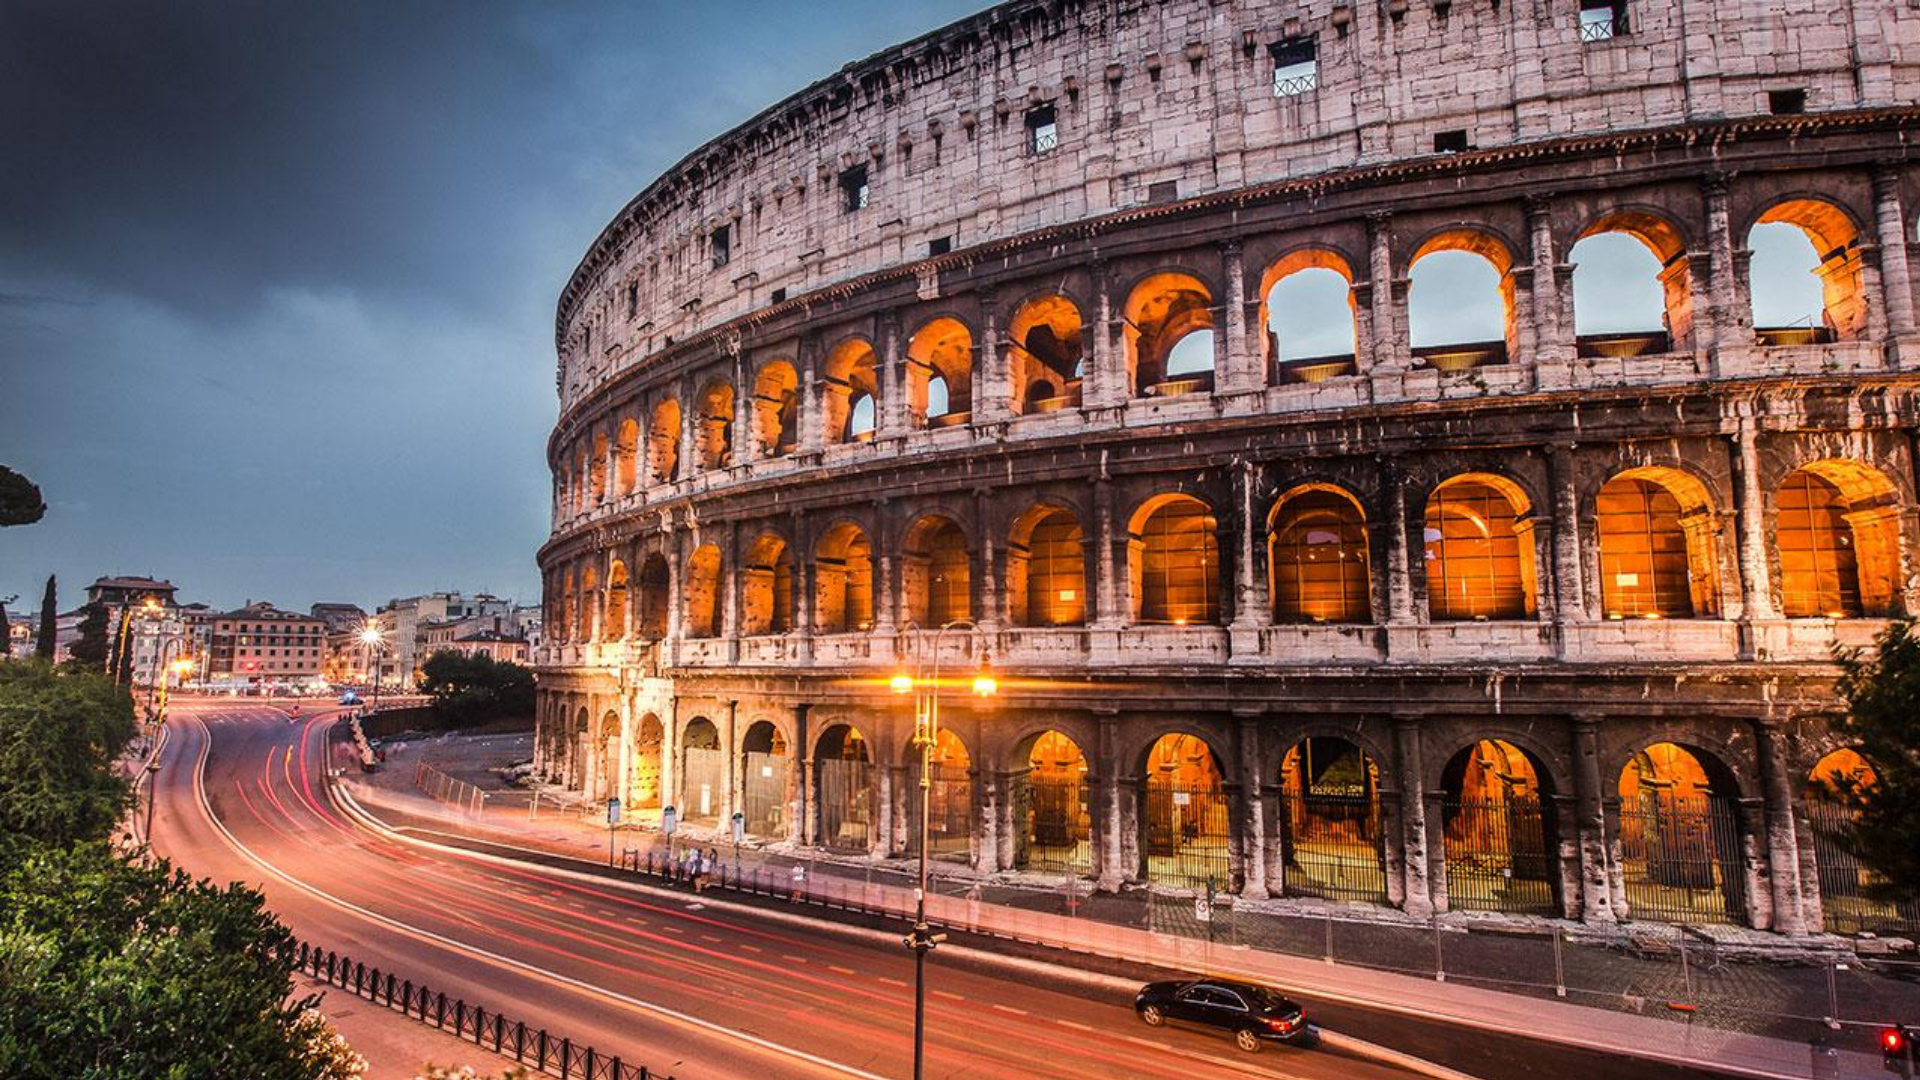 What is the role of Italy in Europe?